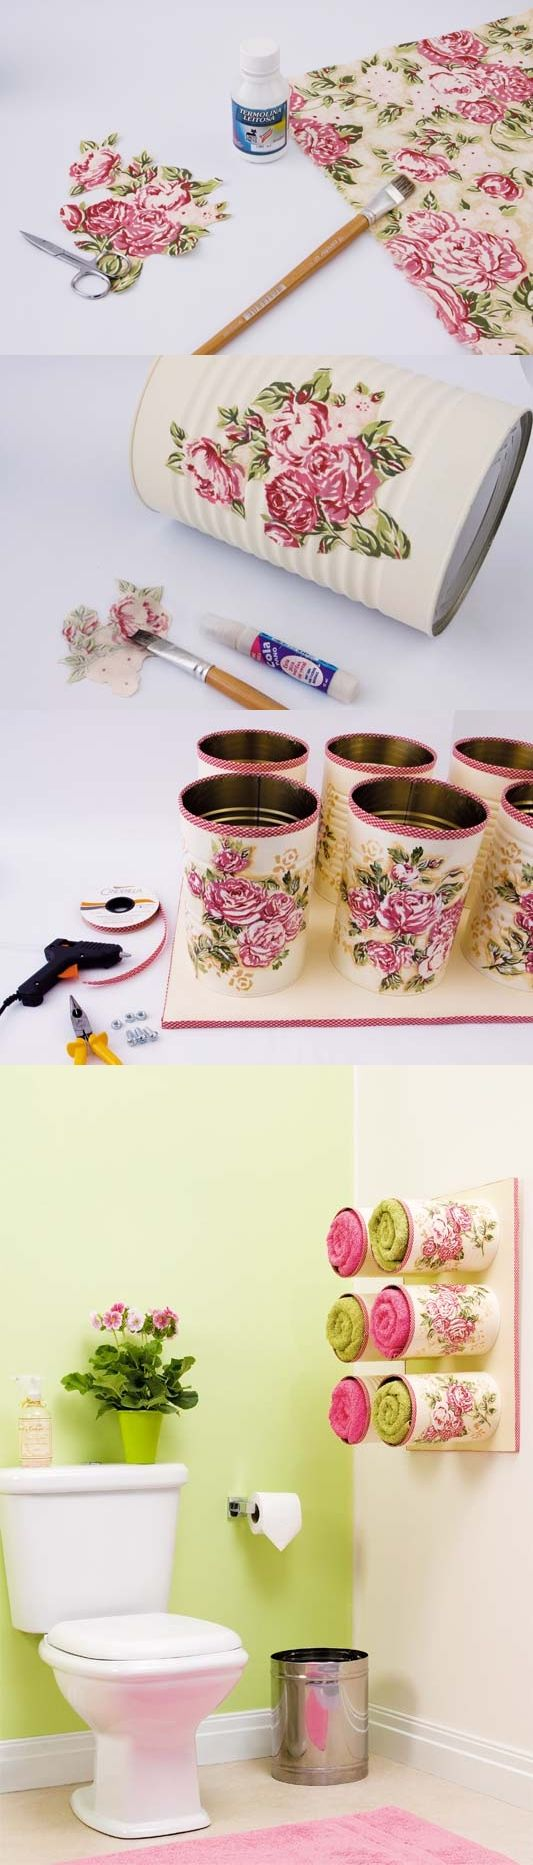 Decorar latas con decoupage...  Towel storage made of decoupaged tin cans